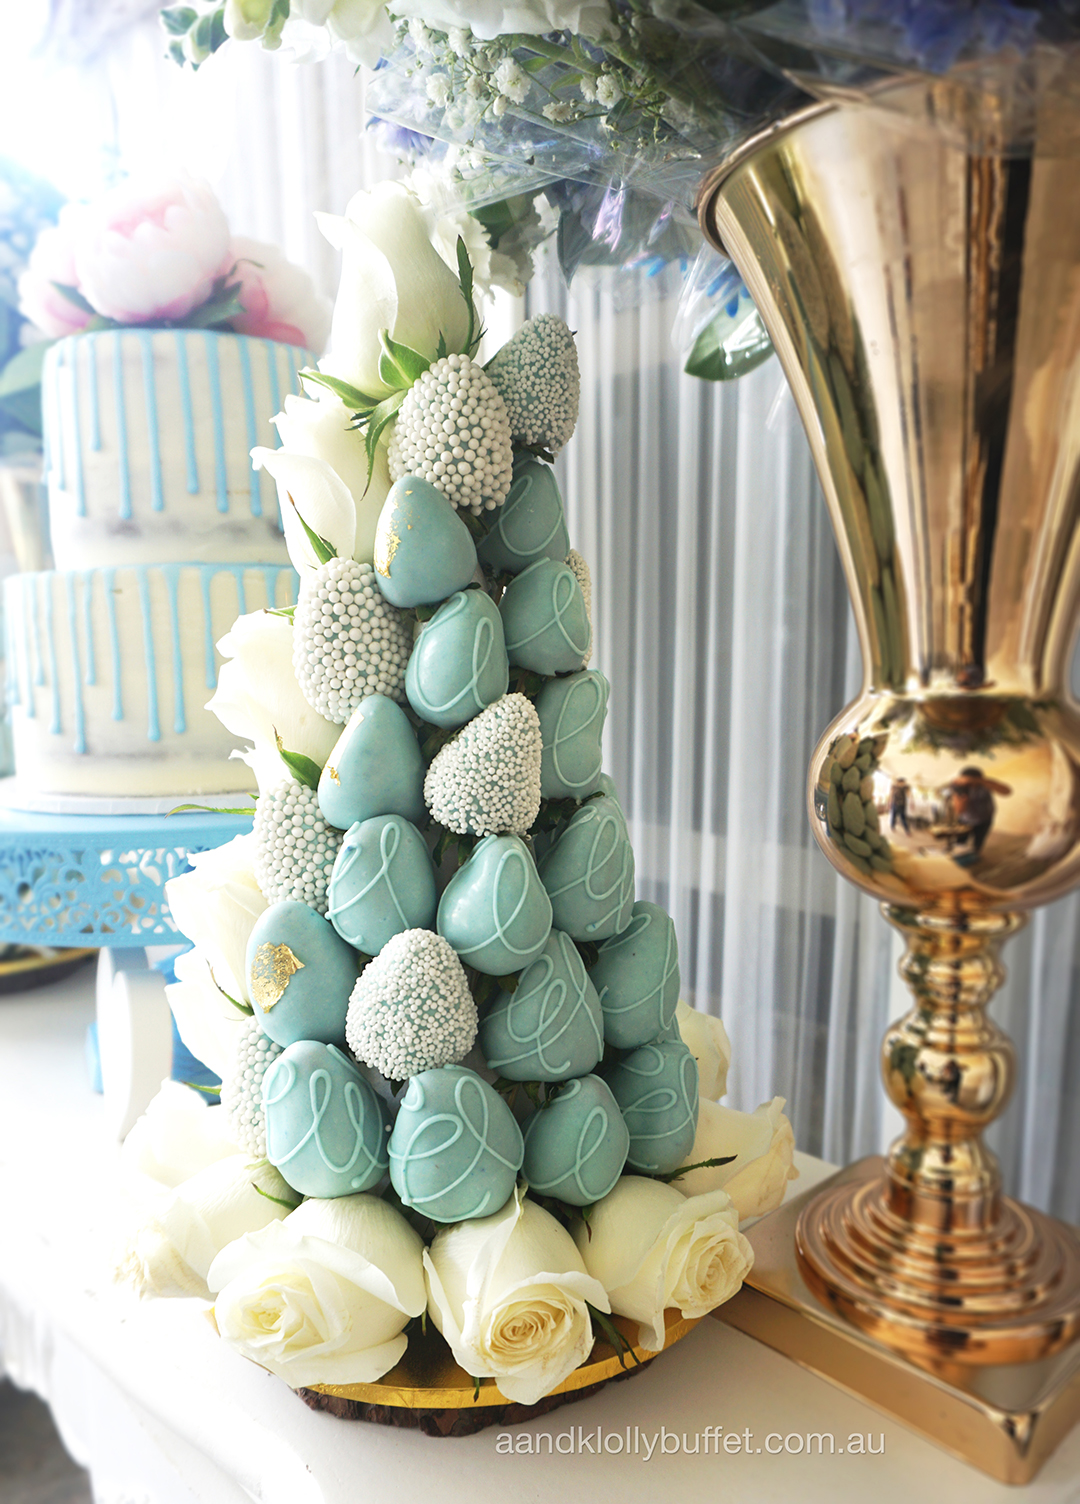 Lauren's Rustic Chic Baby Shower by A&K Lolly Buffet